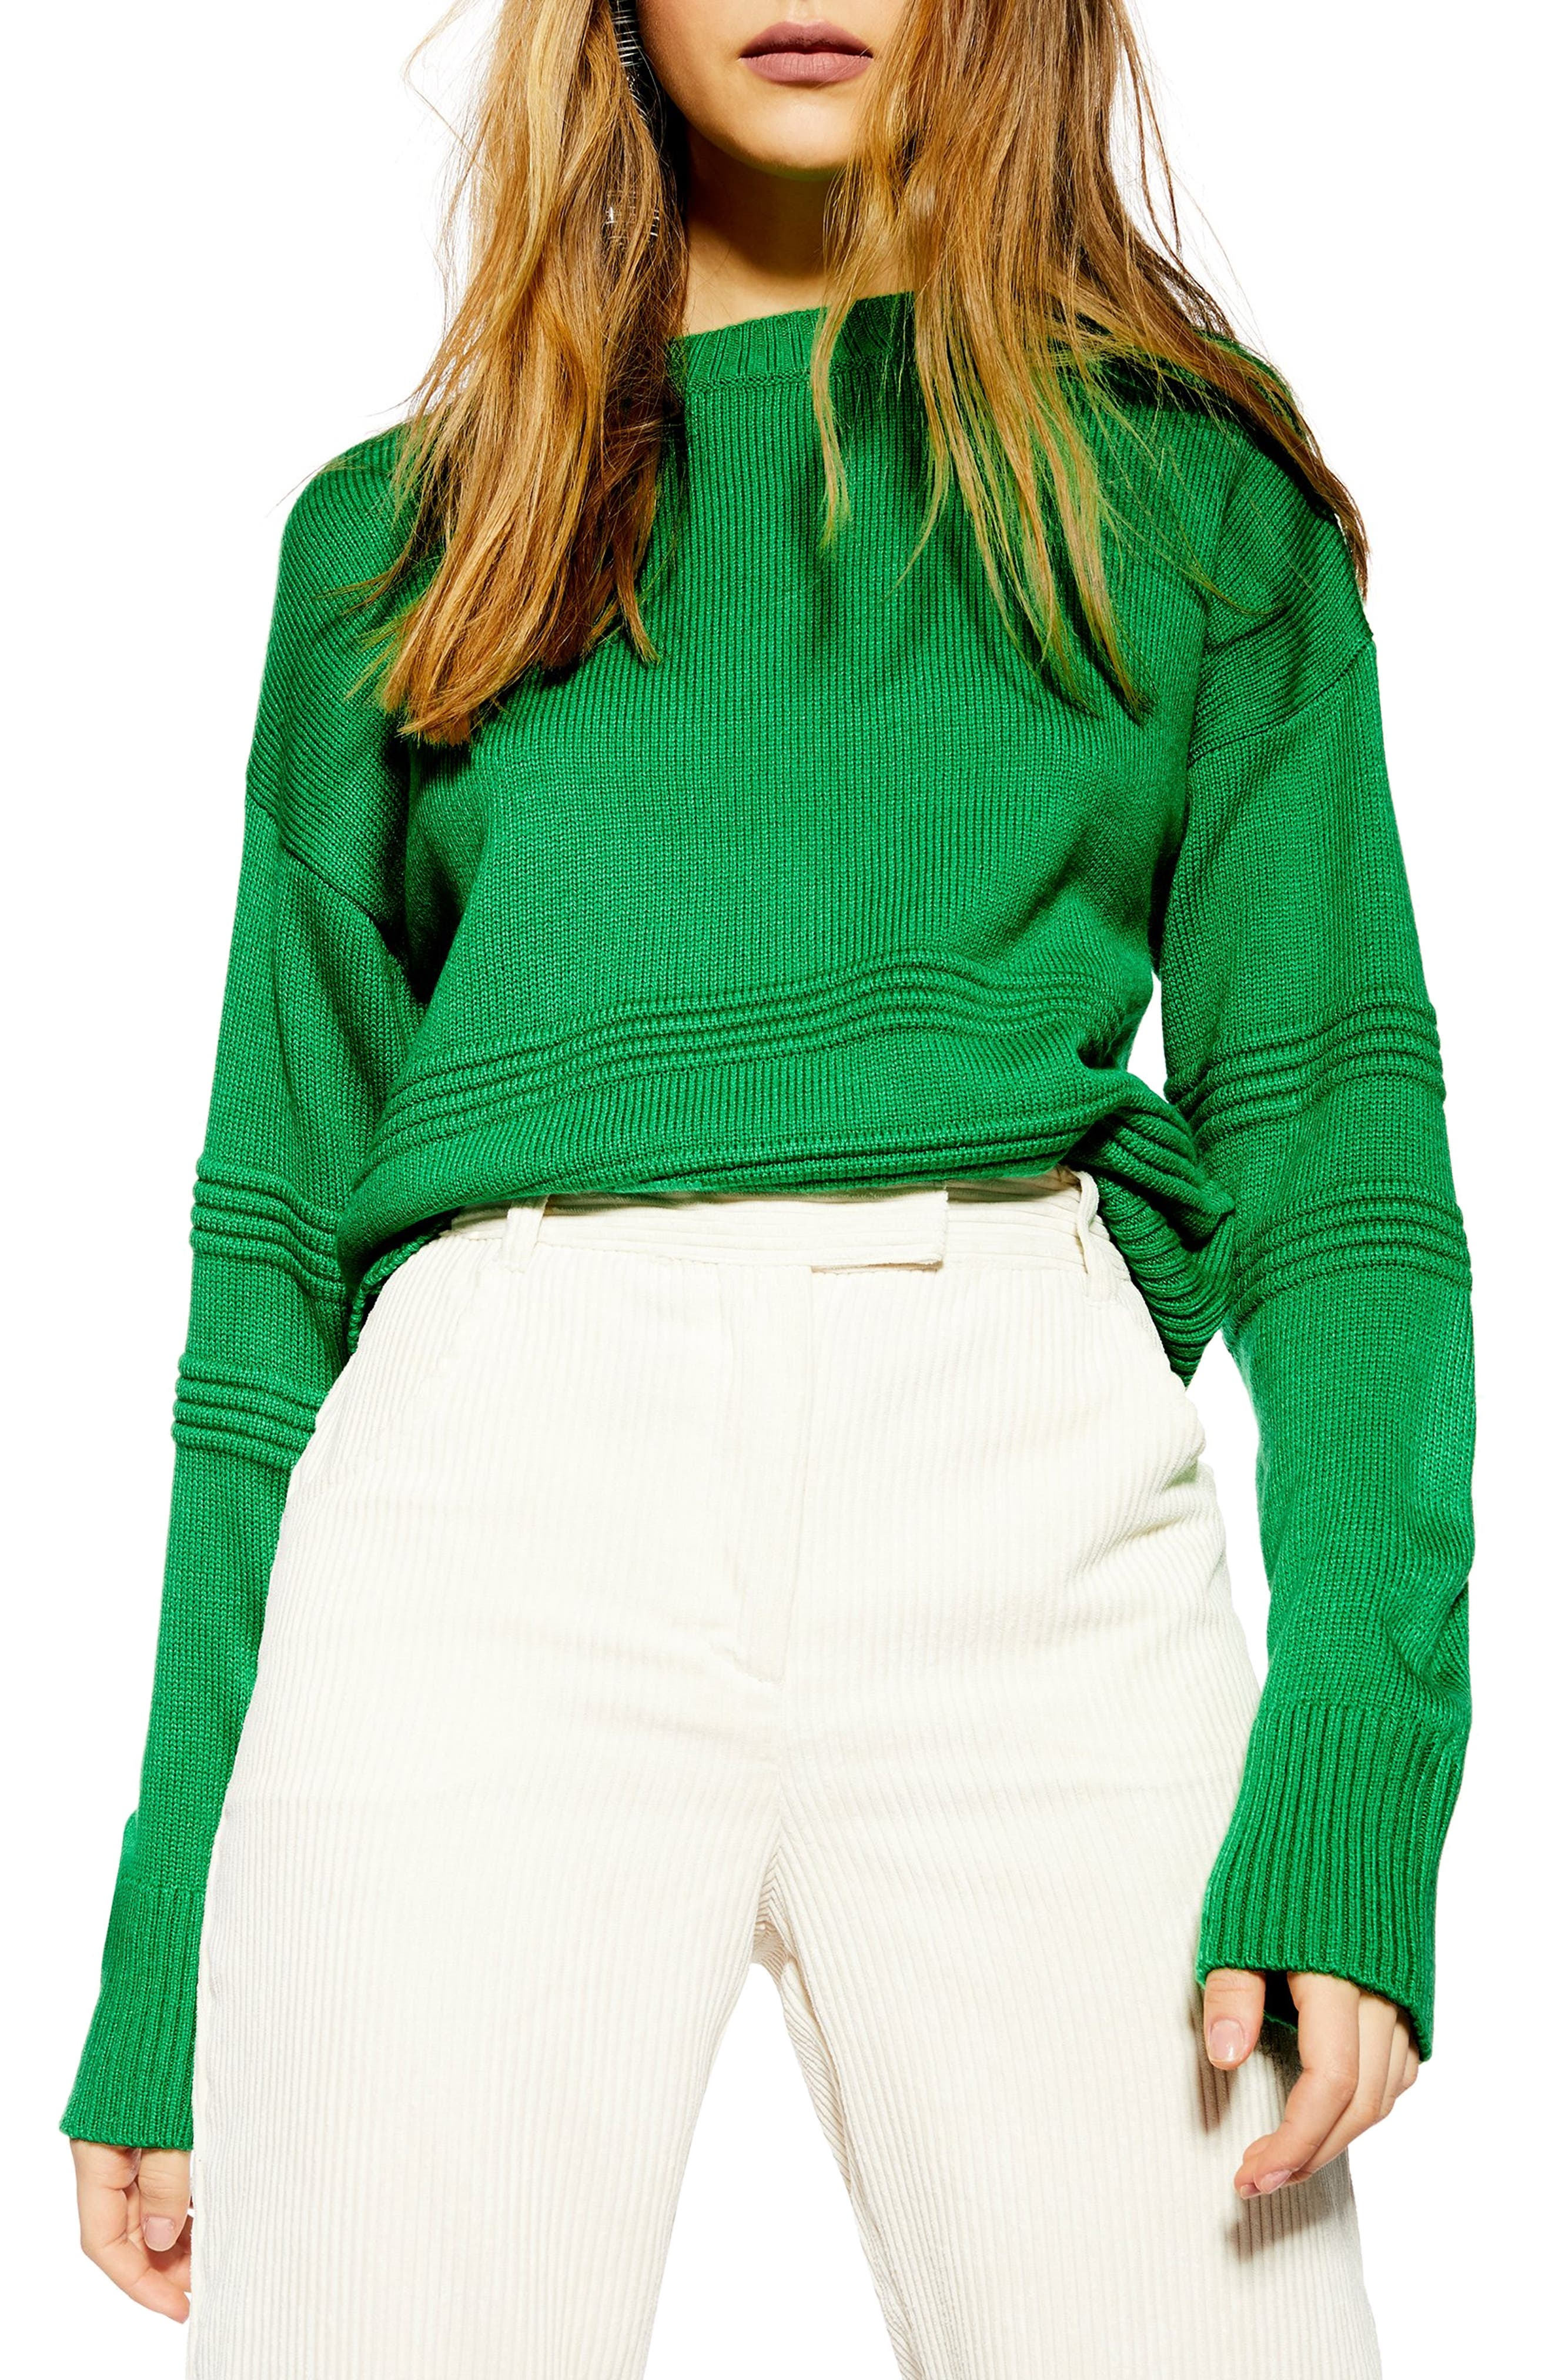 TOPSHOP, Ottoman Stitch Sweater, Main thumbnail 1, color, GREEN